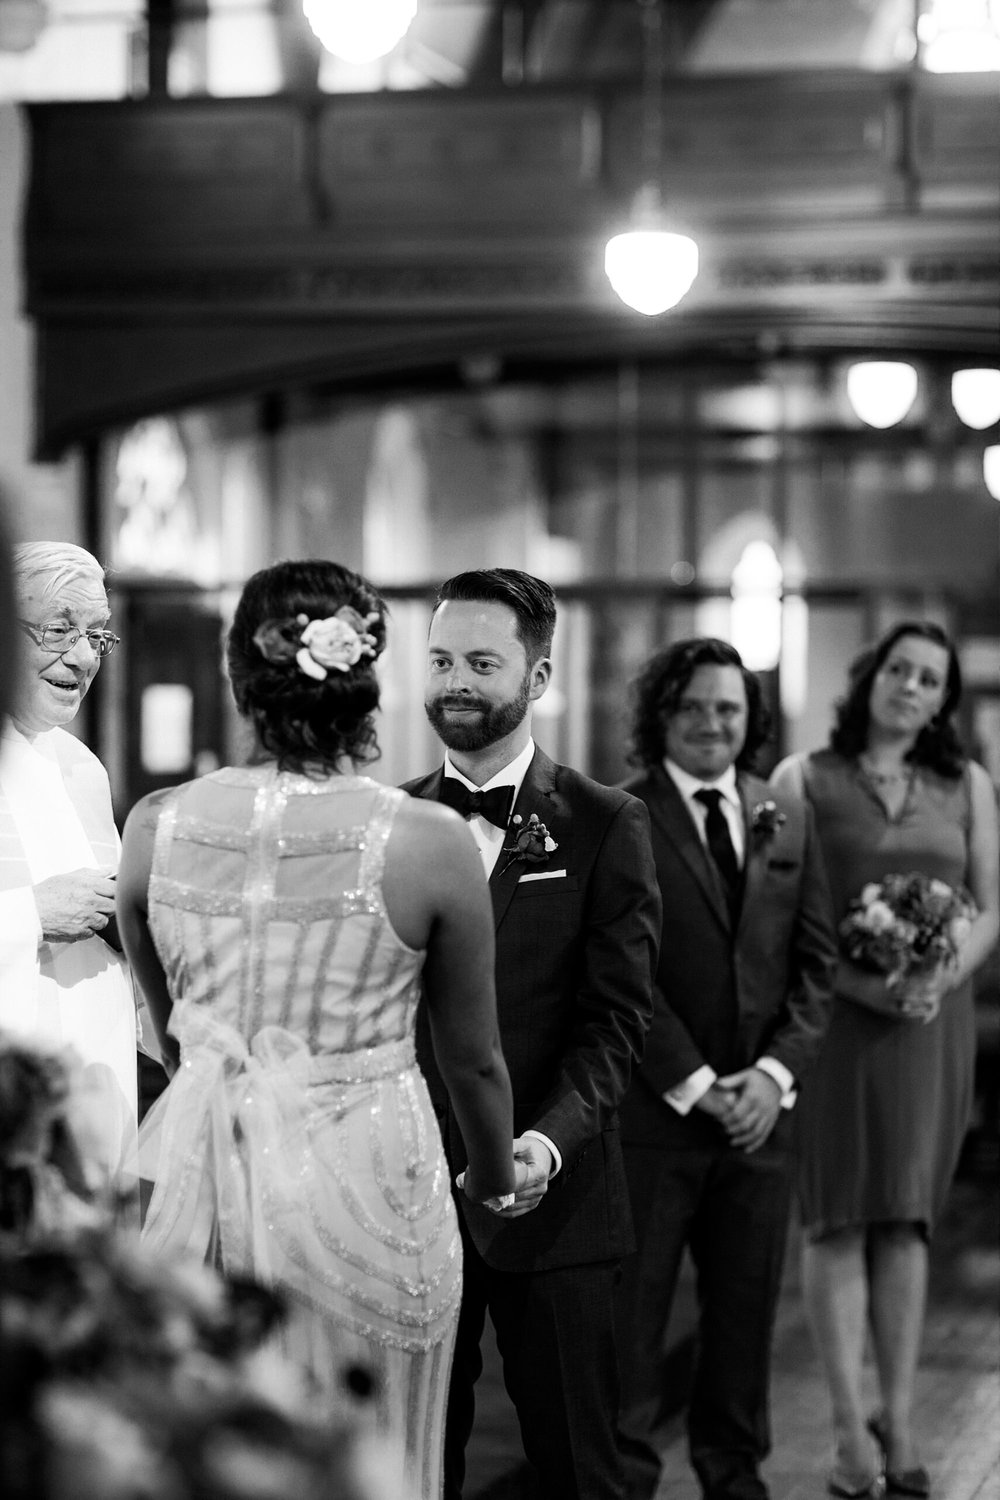 Julia_Archibald_Wedding_Photography_Melbourne_Australia_08.jpg